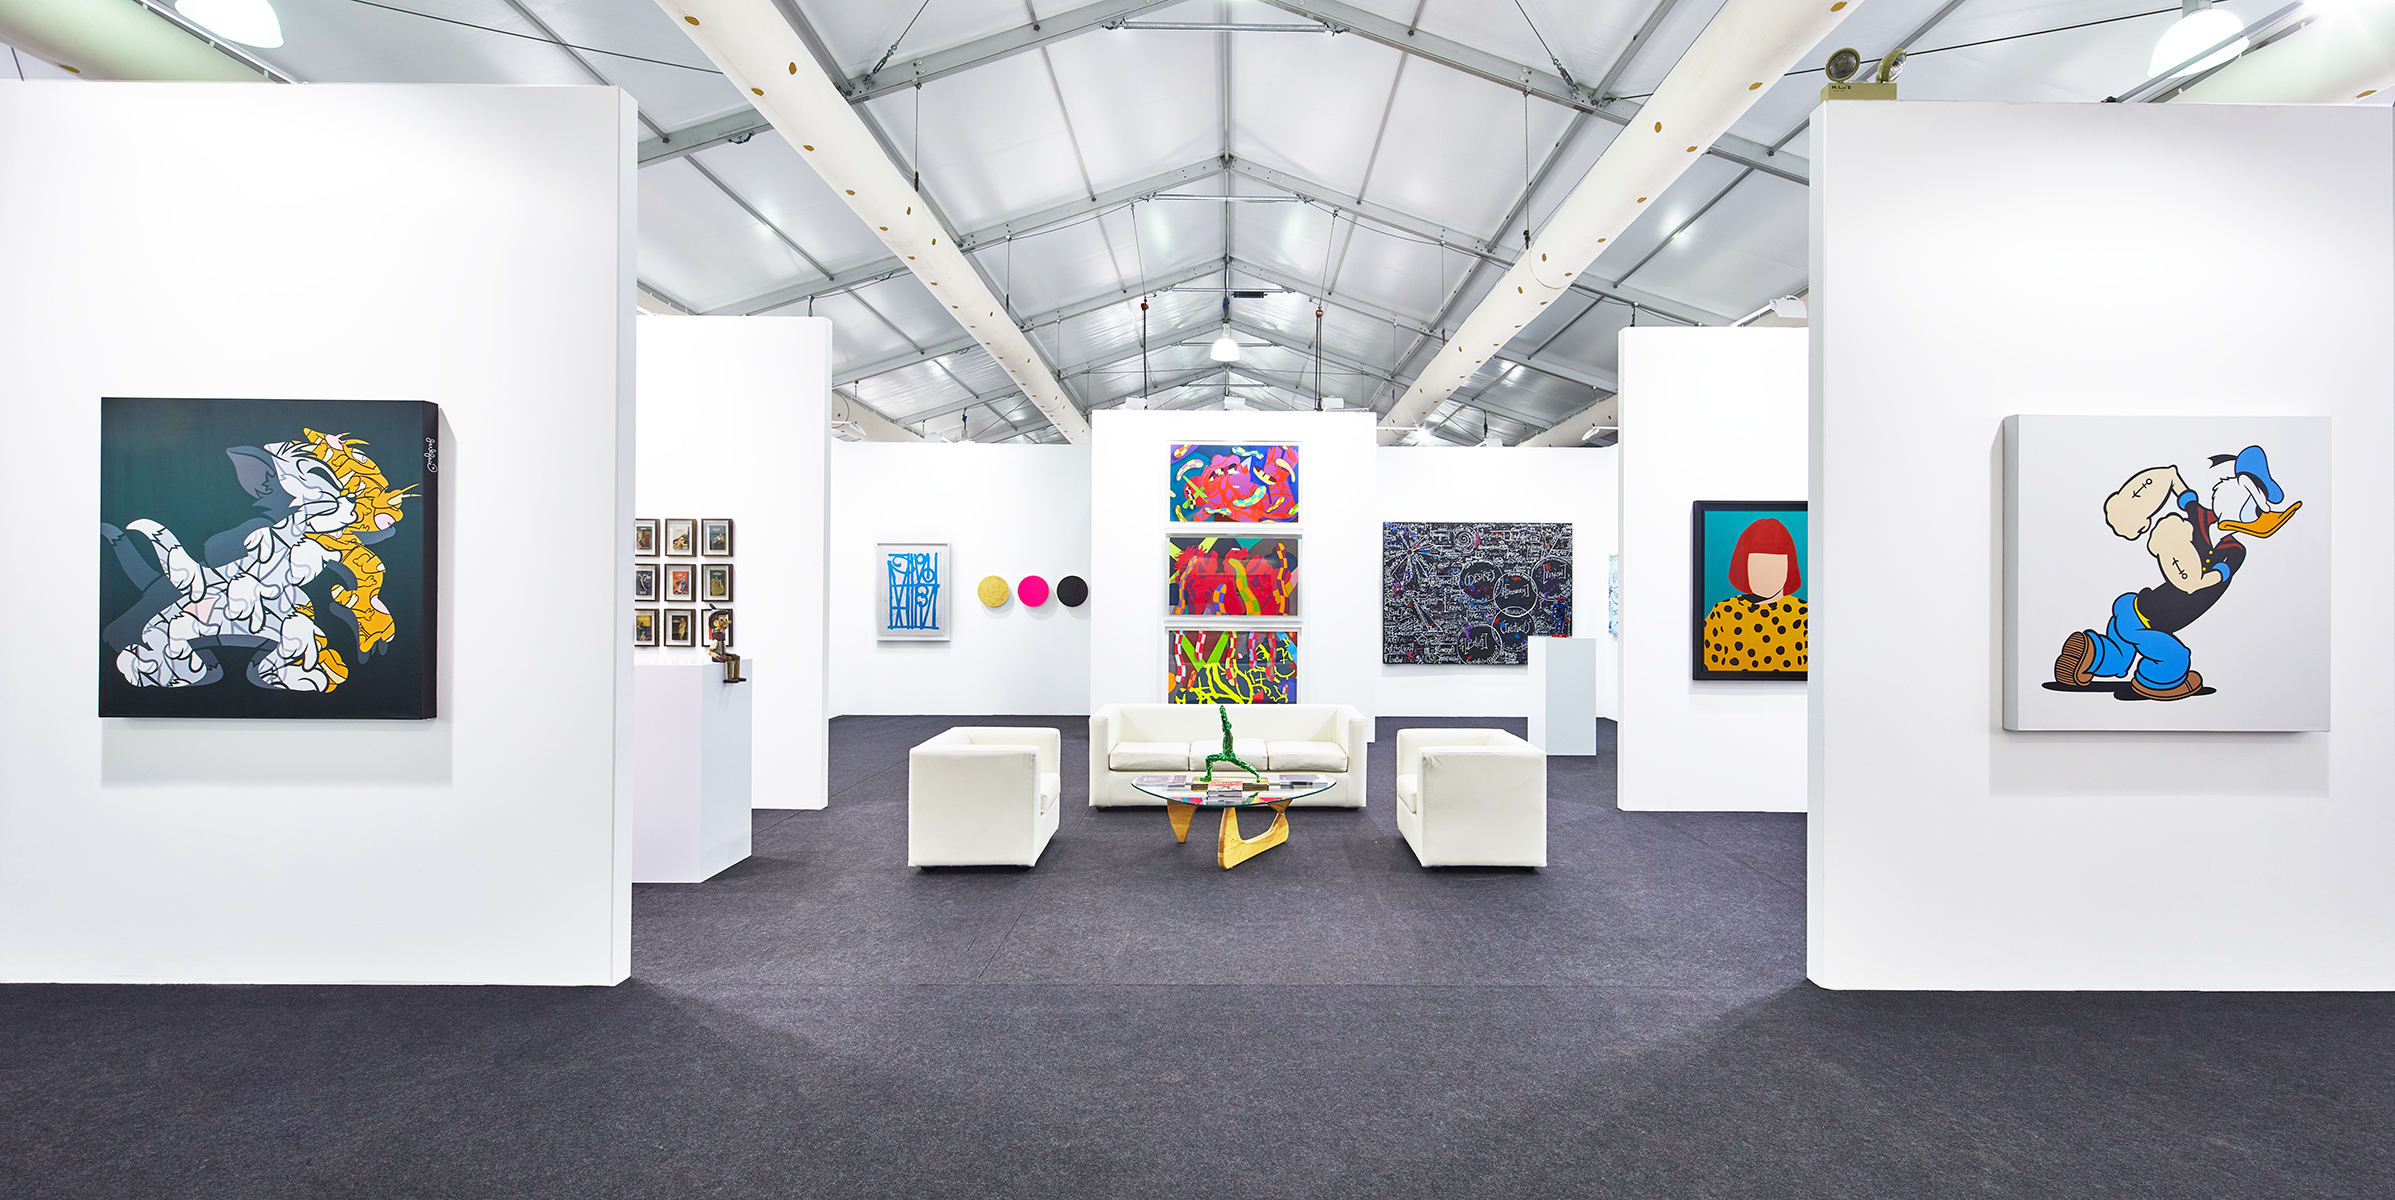 Maddox Gallery returns to Art Central Hong Kong for a second year